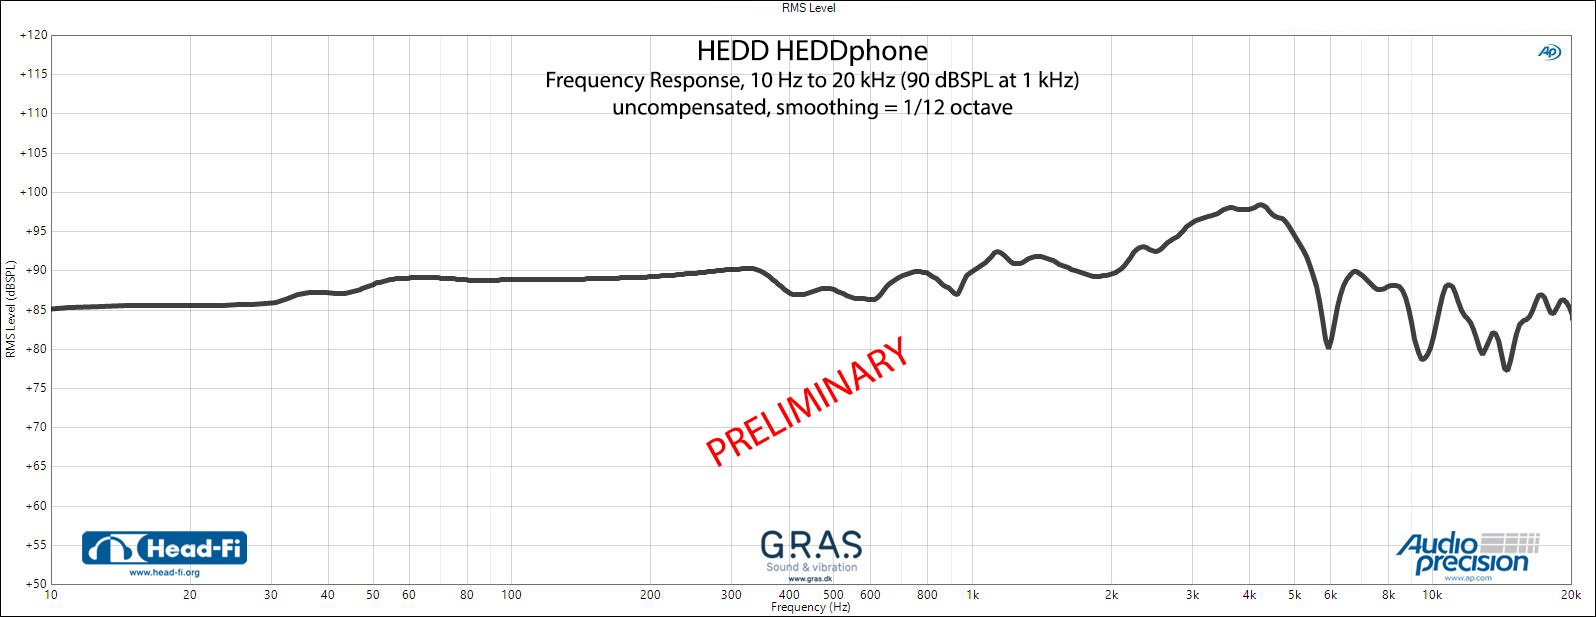 HEDD_HEDDphone_Measurements_Frequency_Response_PRELIMINARY.jpg